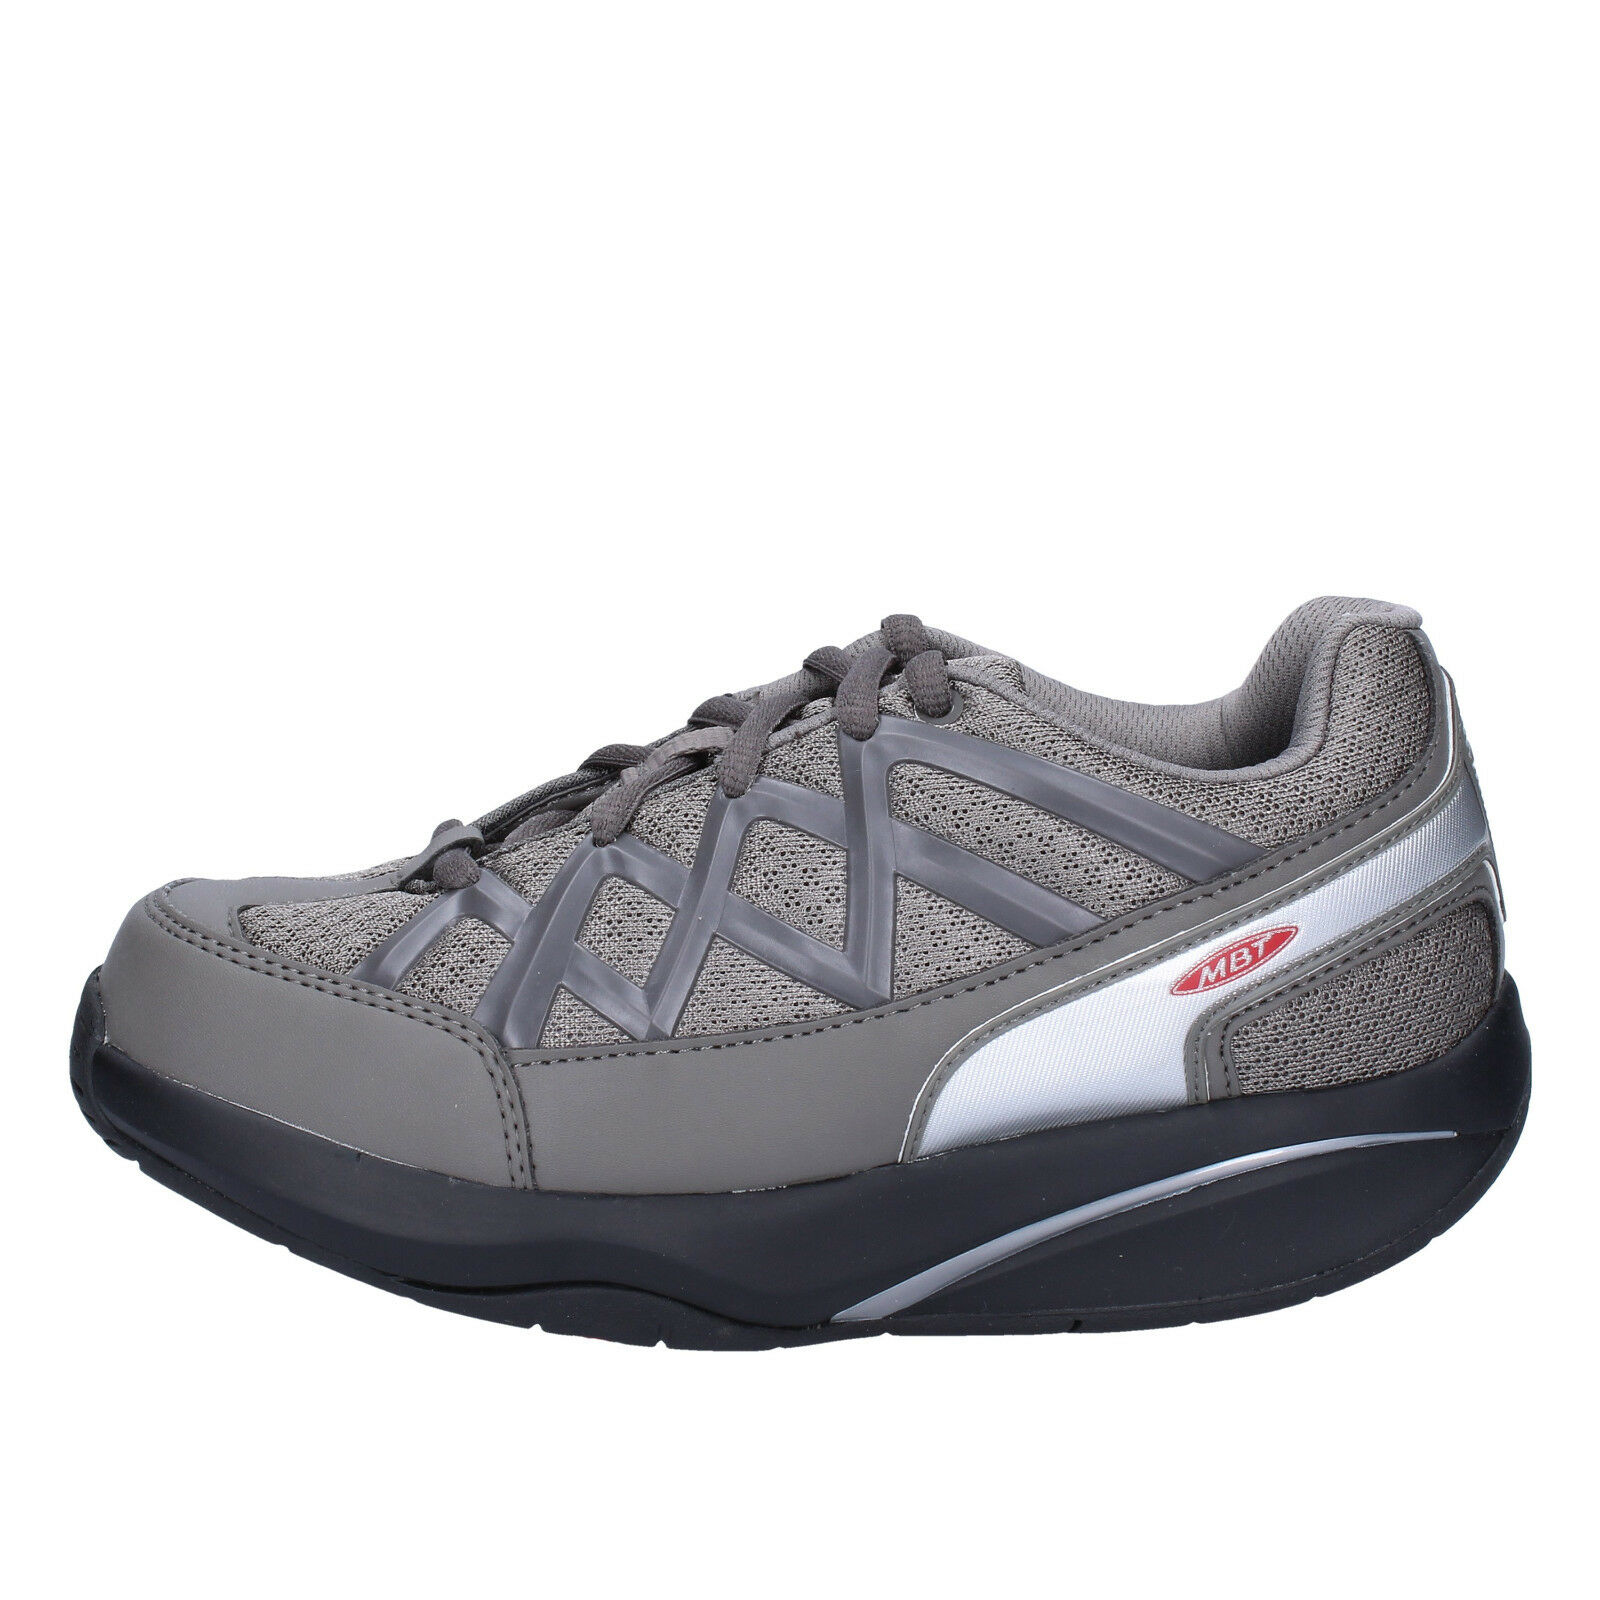 Womens shoes MBT 3,5 () sneakers grey textile dynamic AB390-36